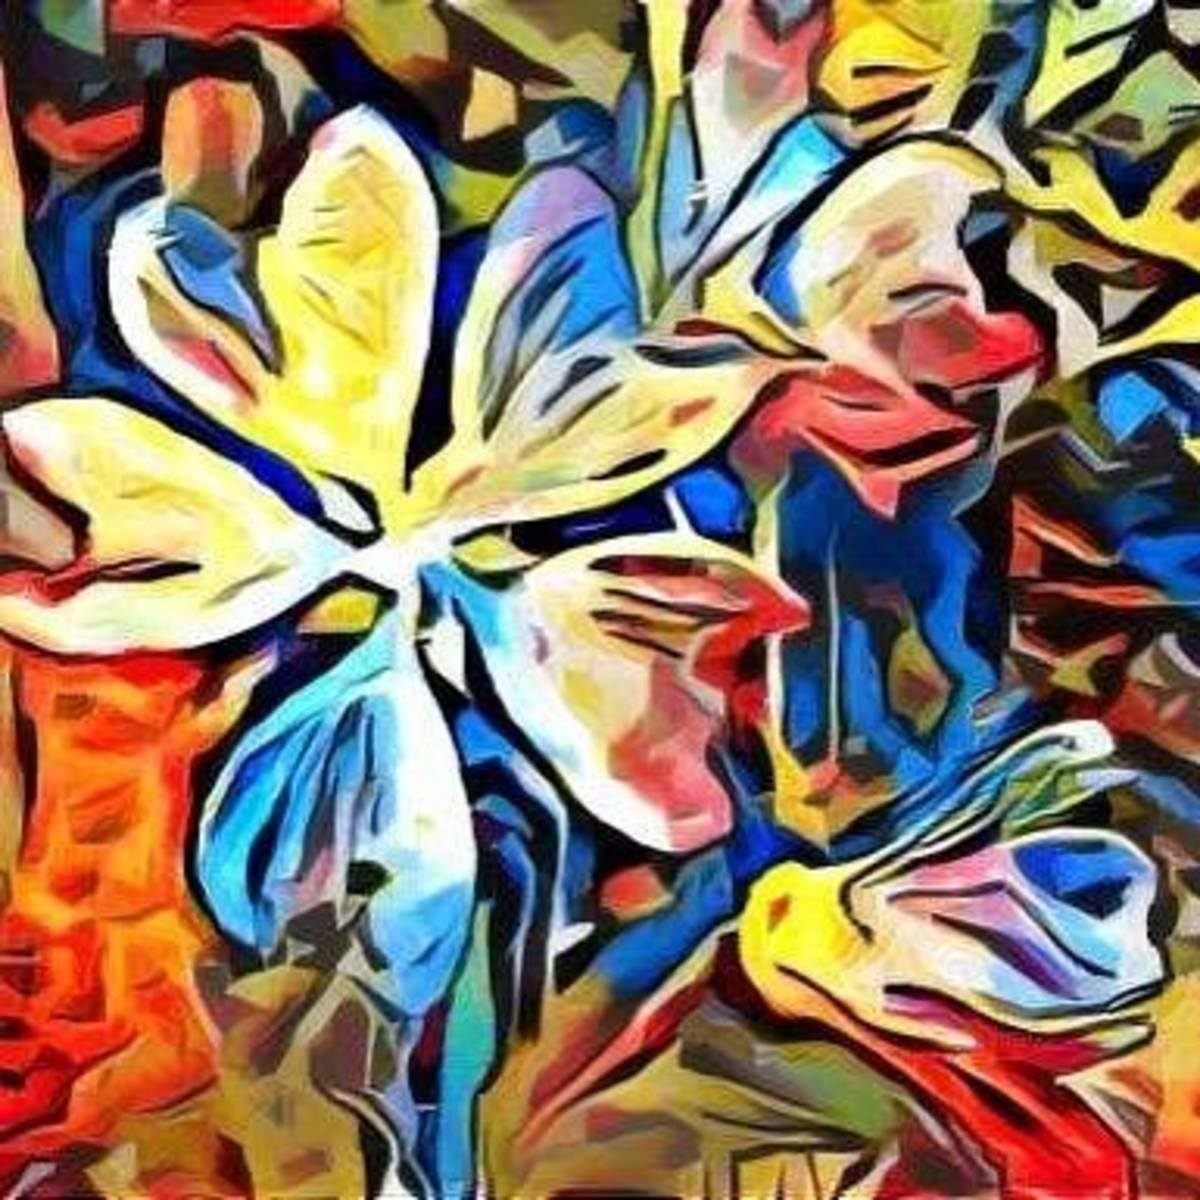 Bloomin' by Original Art by Gina Welds Hulse